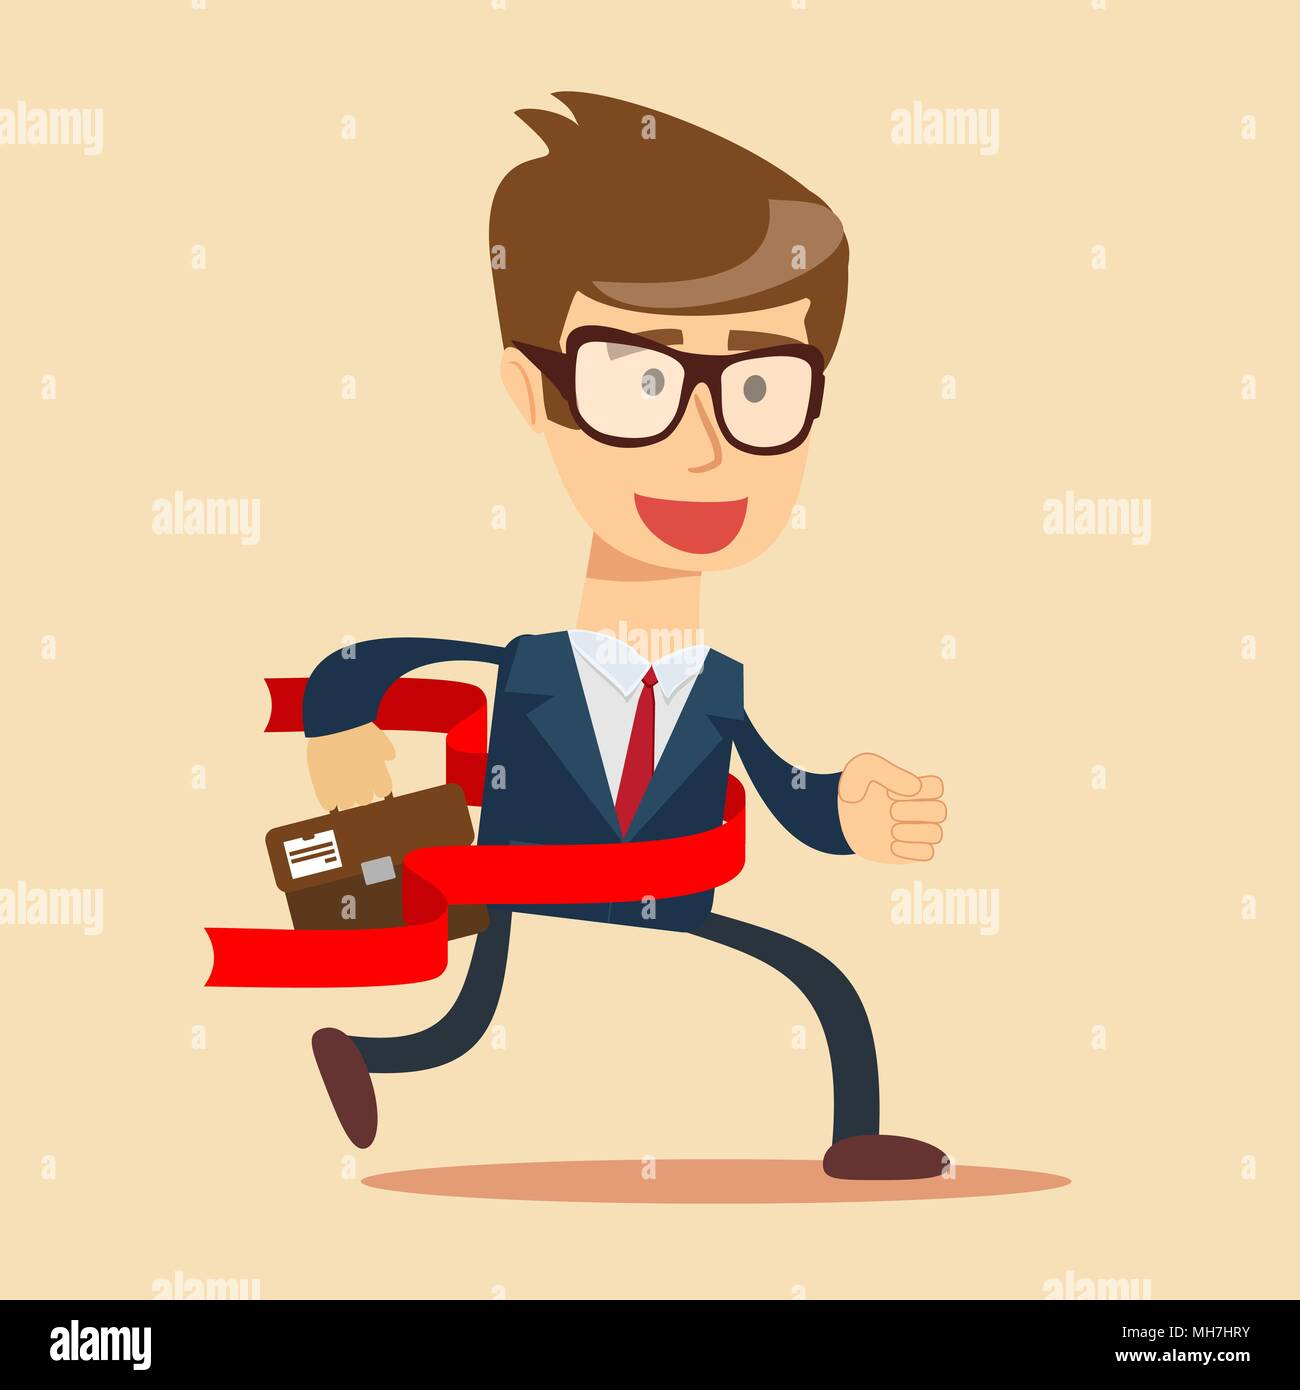 Concept of successful businessman in a finishing line. - Stock Image